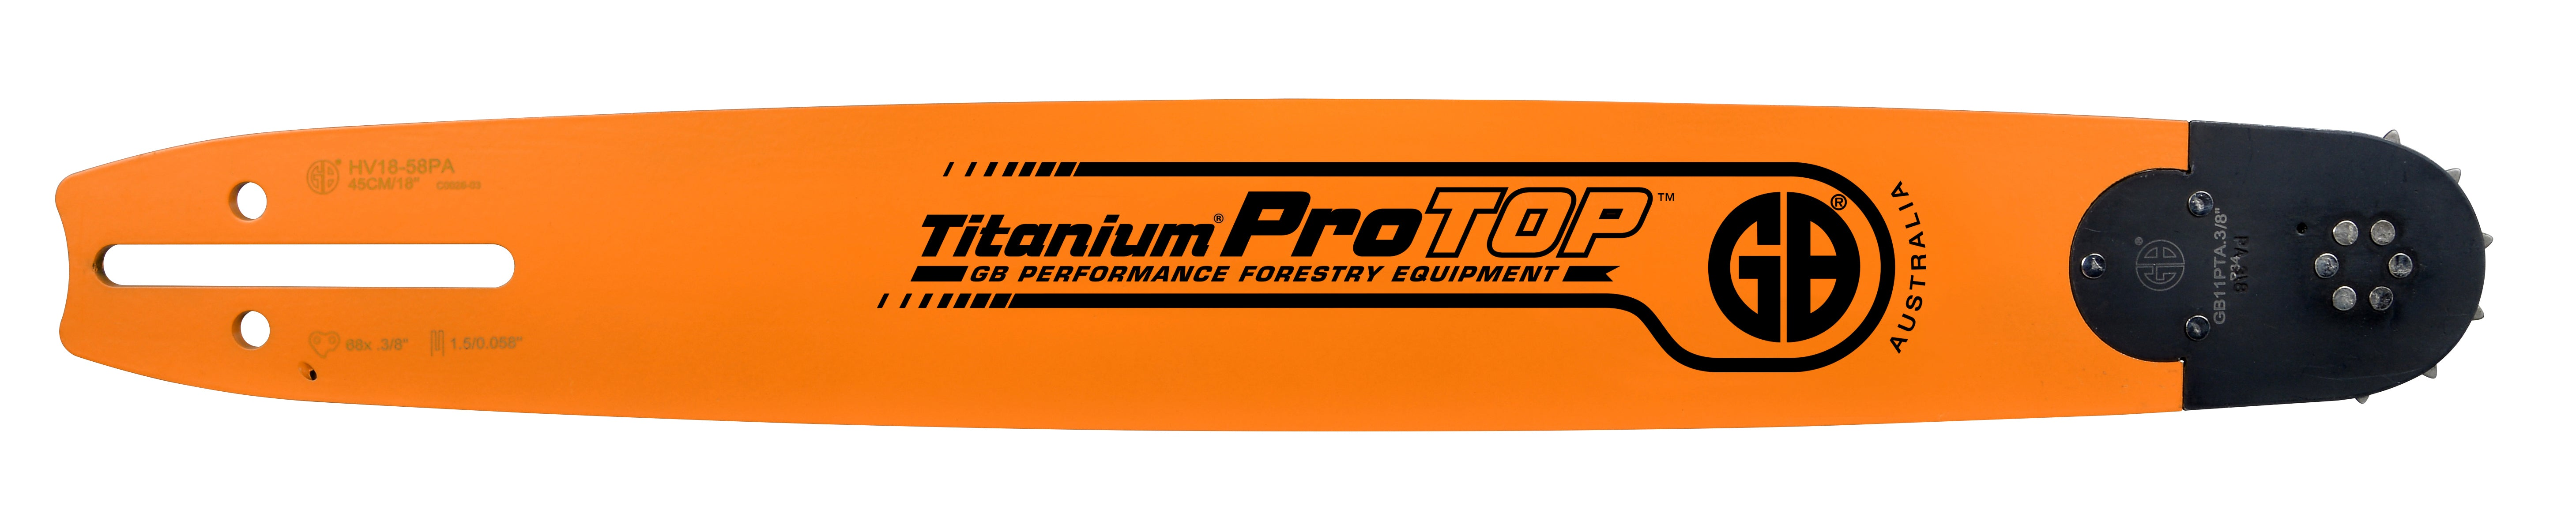 GB Titanium®ProTOP Chainsaw Bar HV28-58PA